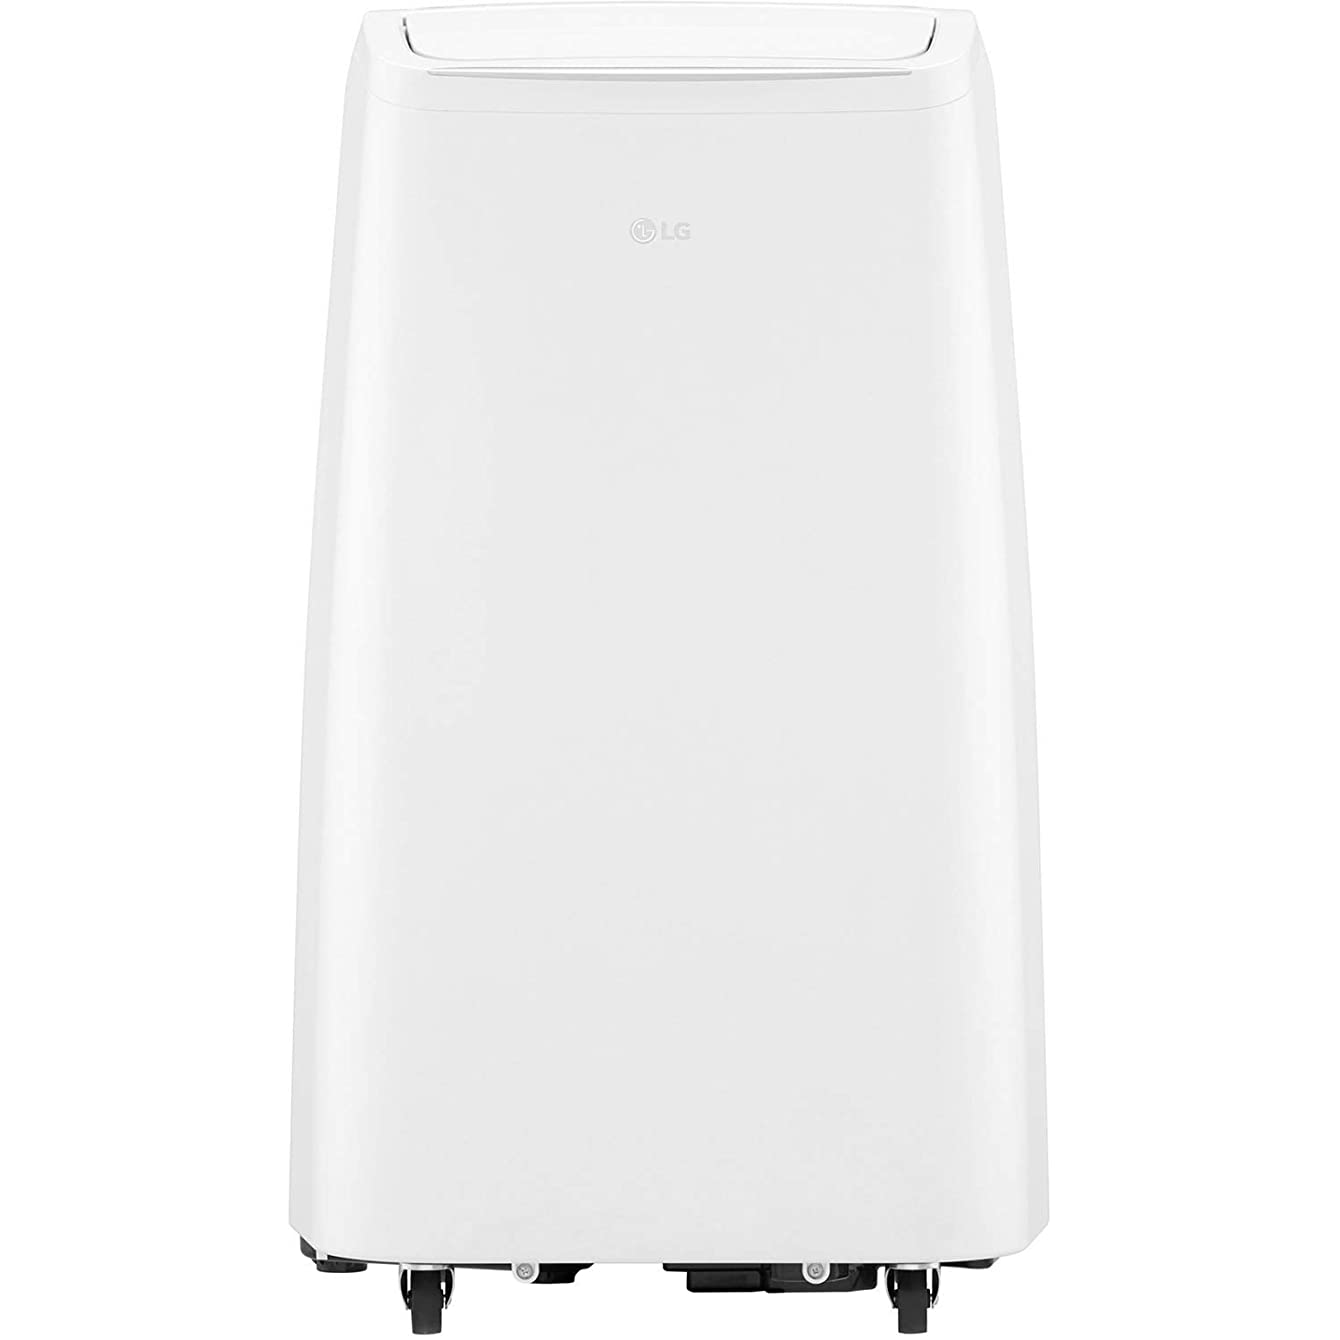 LG 115V Remote Control Portable Air Conditioner, Rooms up to 300-Sq. Ft, White (Renewed)